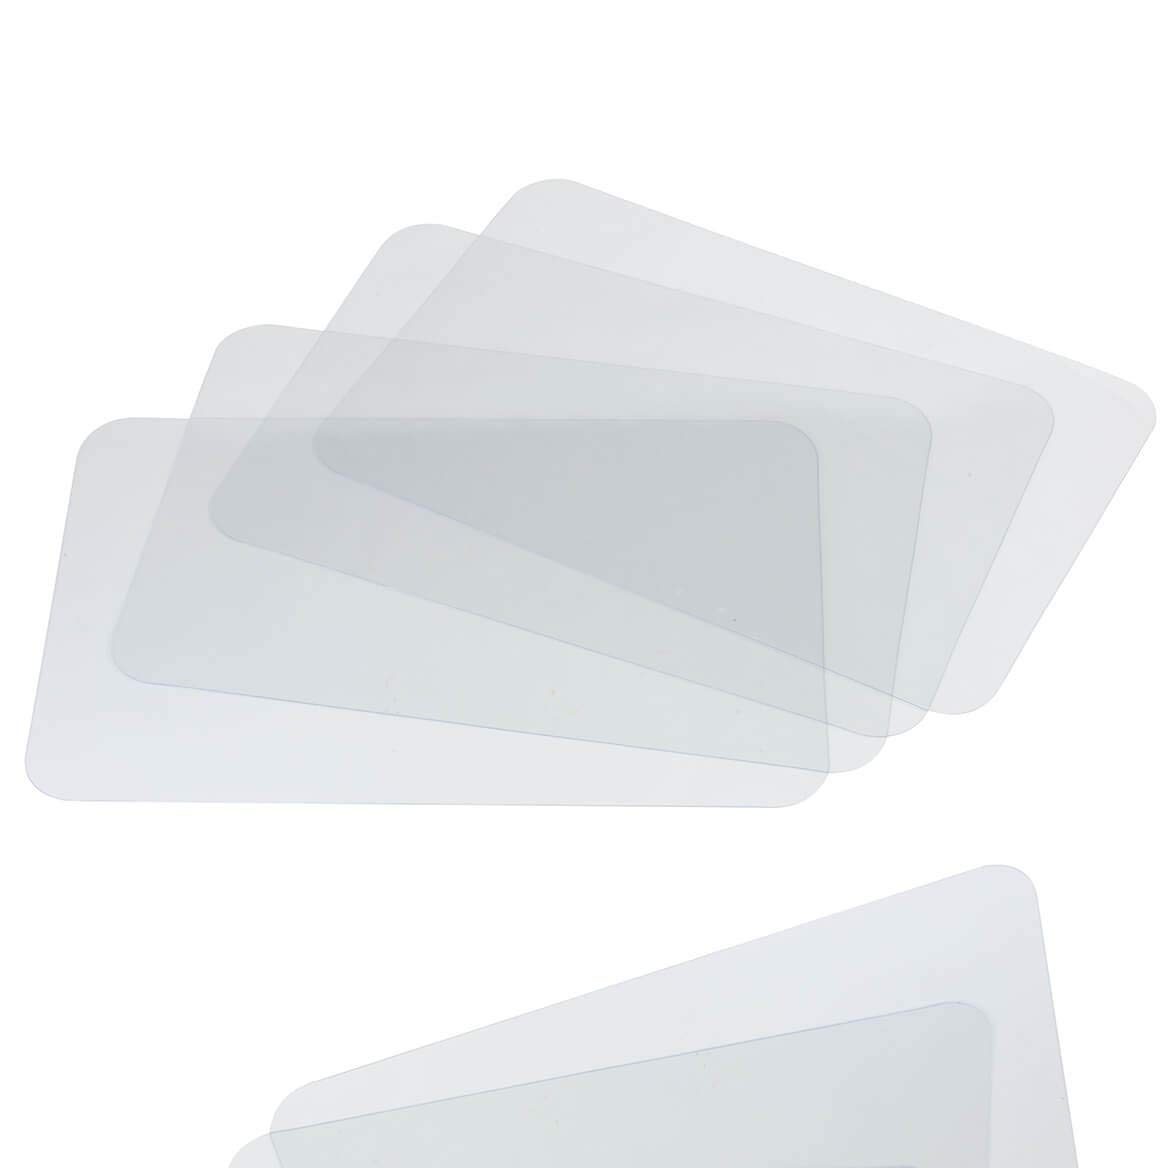 CraftyCrocodile Clear Placemats - Protective Plastic Sheets for Dining Table, Office Desk, Shelves, and Kitchen Counter Cover - Multi-Use, Flexible, and Durable Transparent Mats - Set of 4, 18x12 Inches